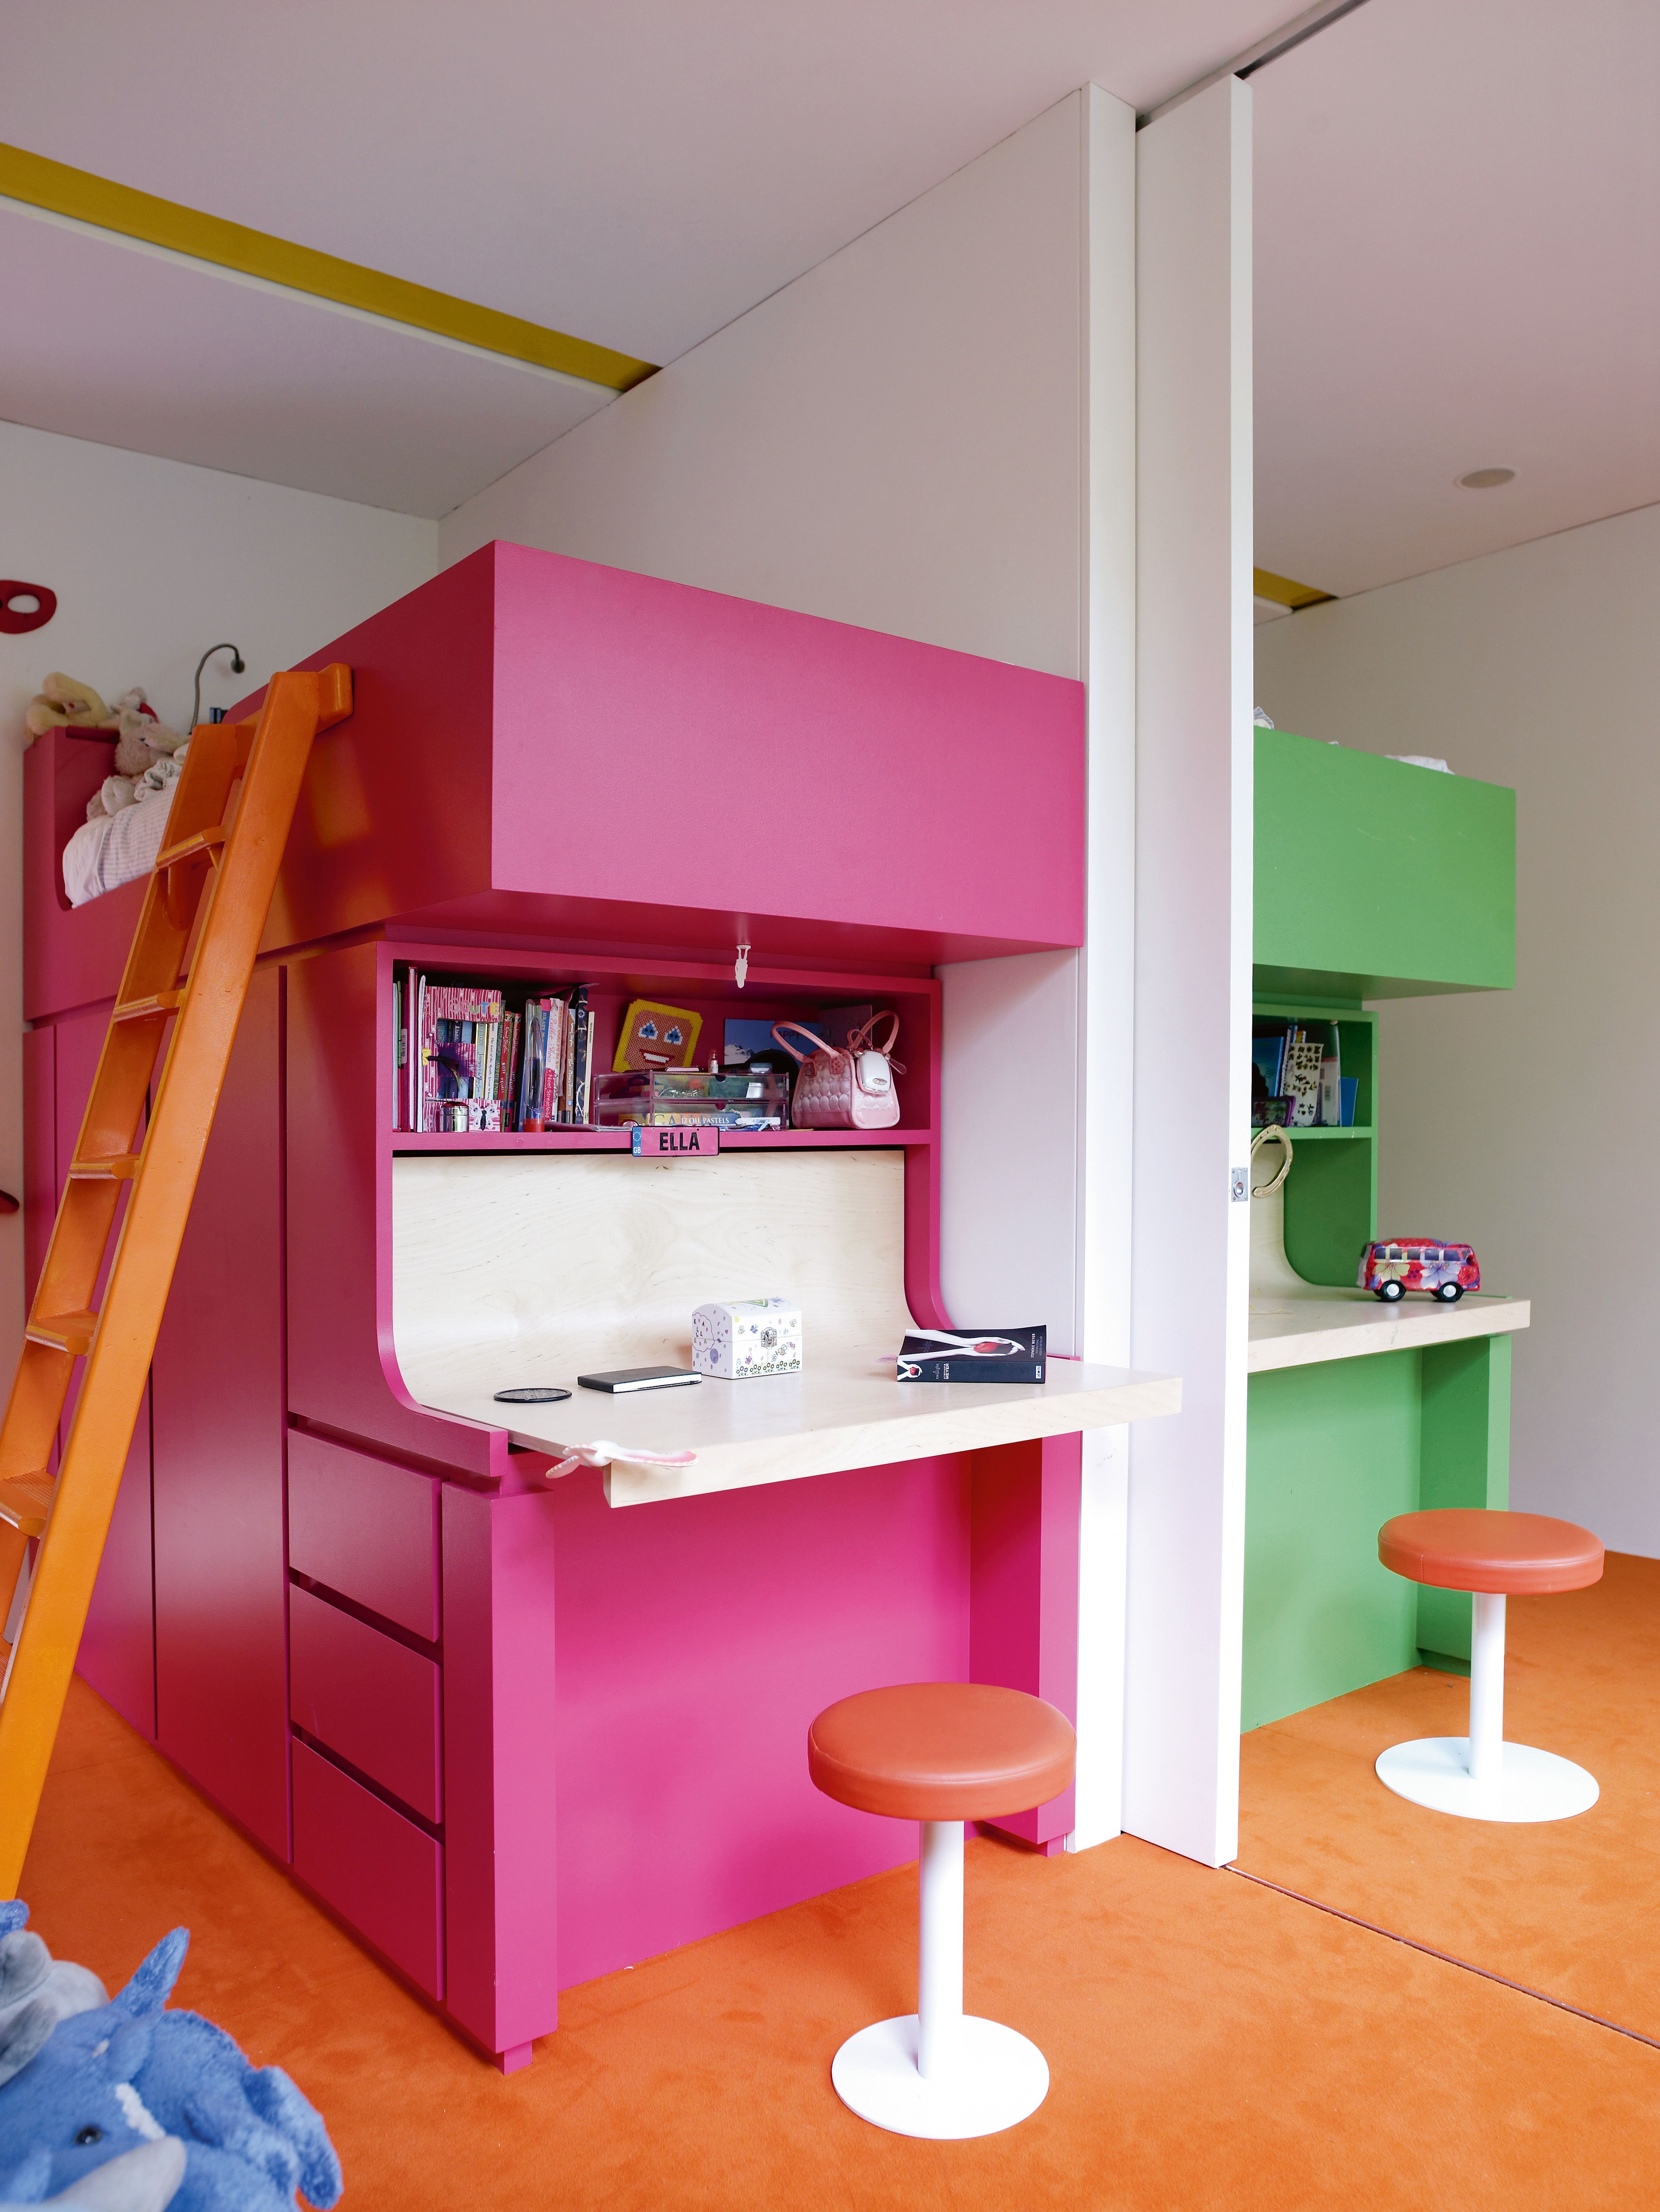 Space Saver Kids Beds interiors: a richard rogers house | desk space, space saver and